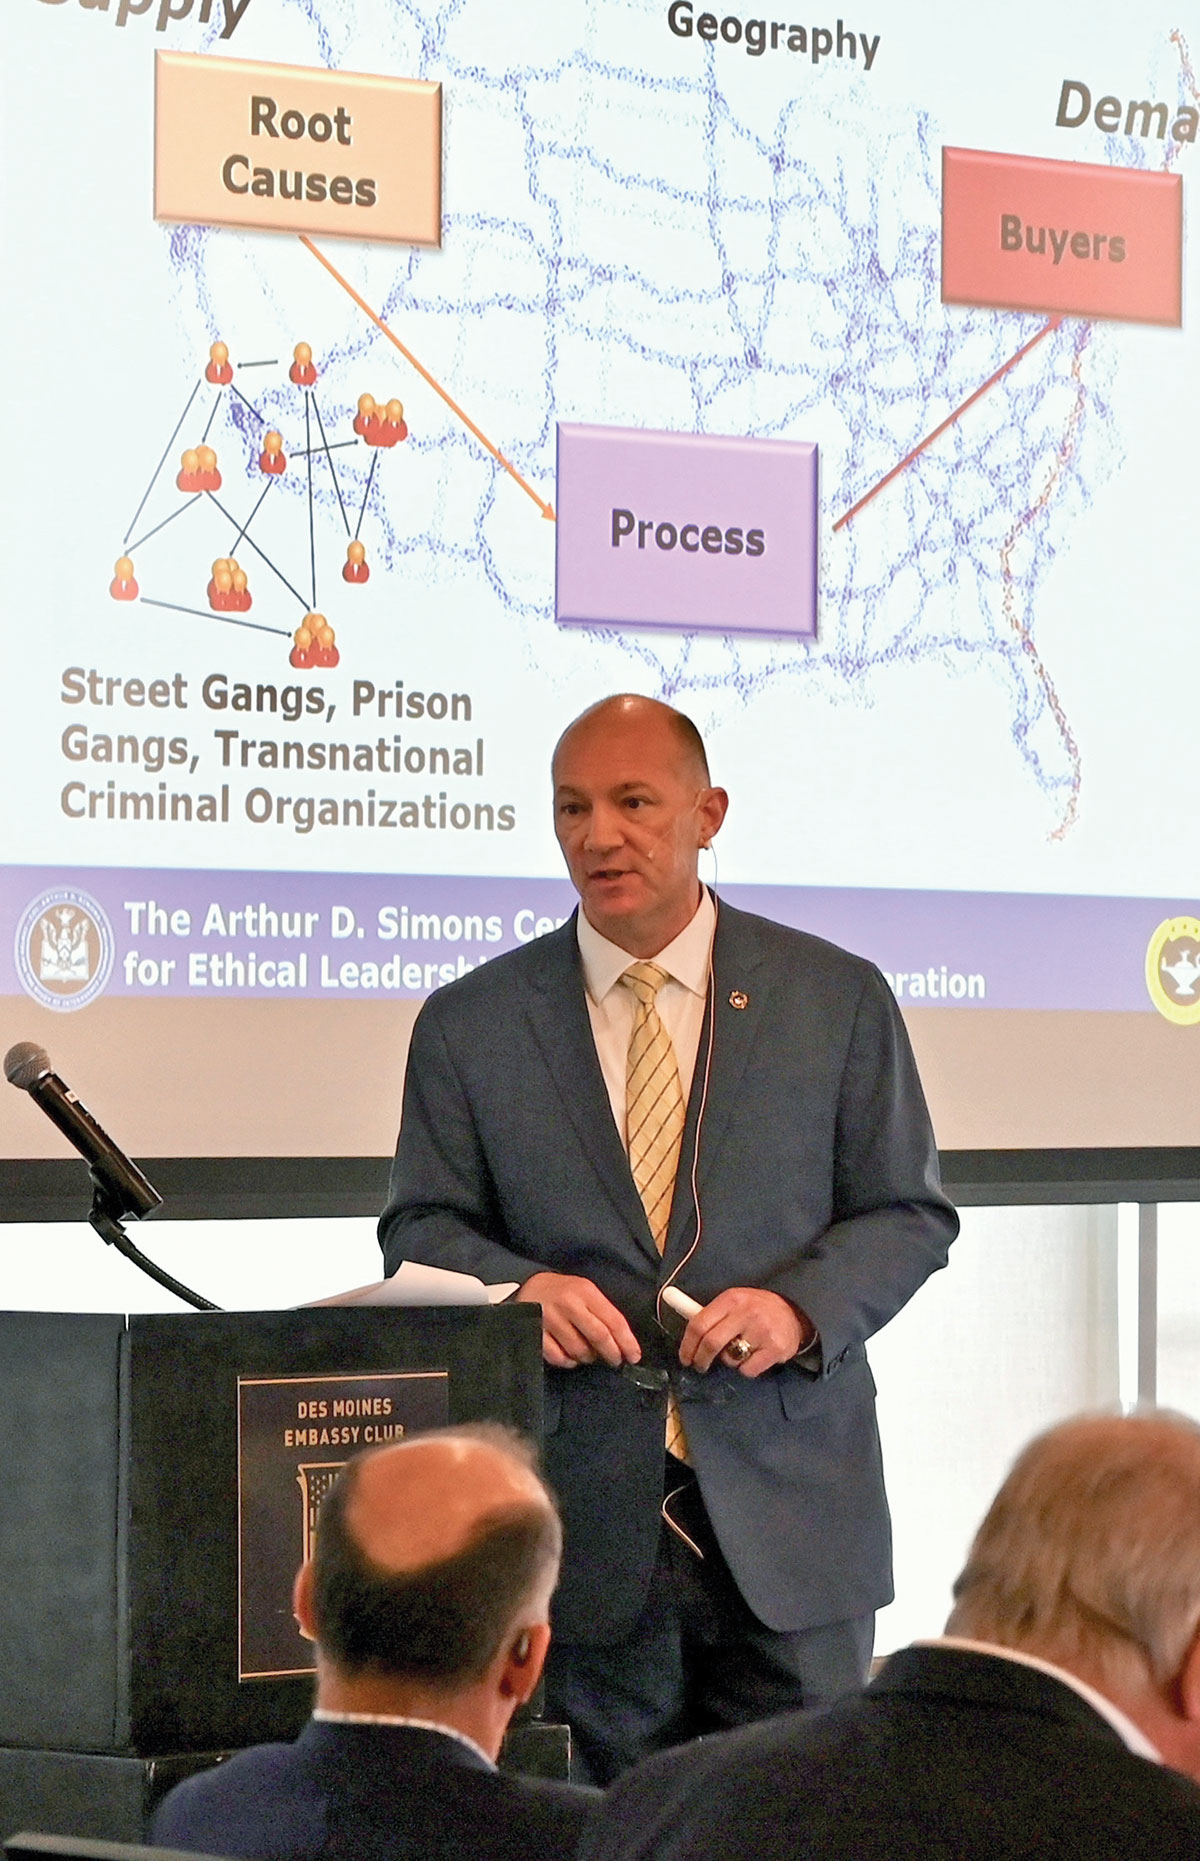 Lt. Col. (Ret.) John Nelson, chief executive officer of Morris, Nelson & Associates, LLC, and a senior research fellow of the Arthur D. Simons Center, delivers his presentation on Counter Human Trafficking at the Des Moines Embassy Club on May 20, 2021, in the inaugural event of the Simons Center National Security Forum.